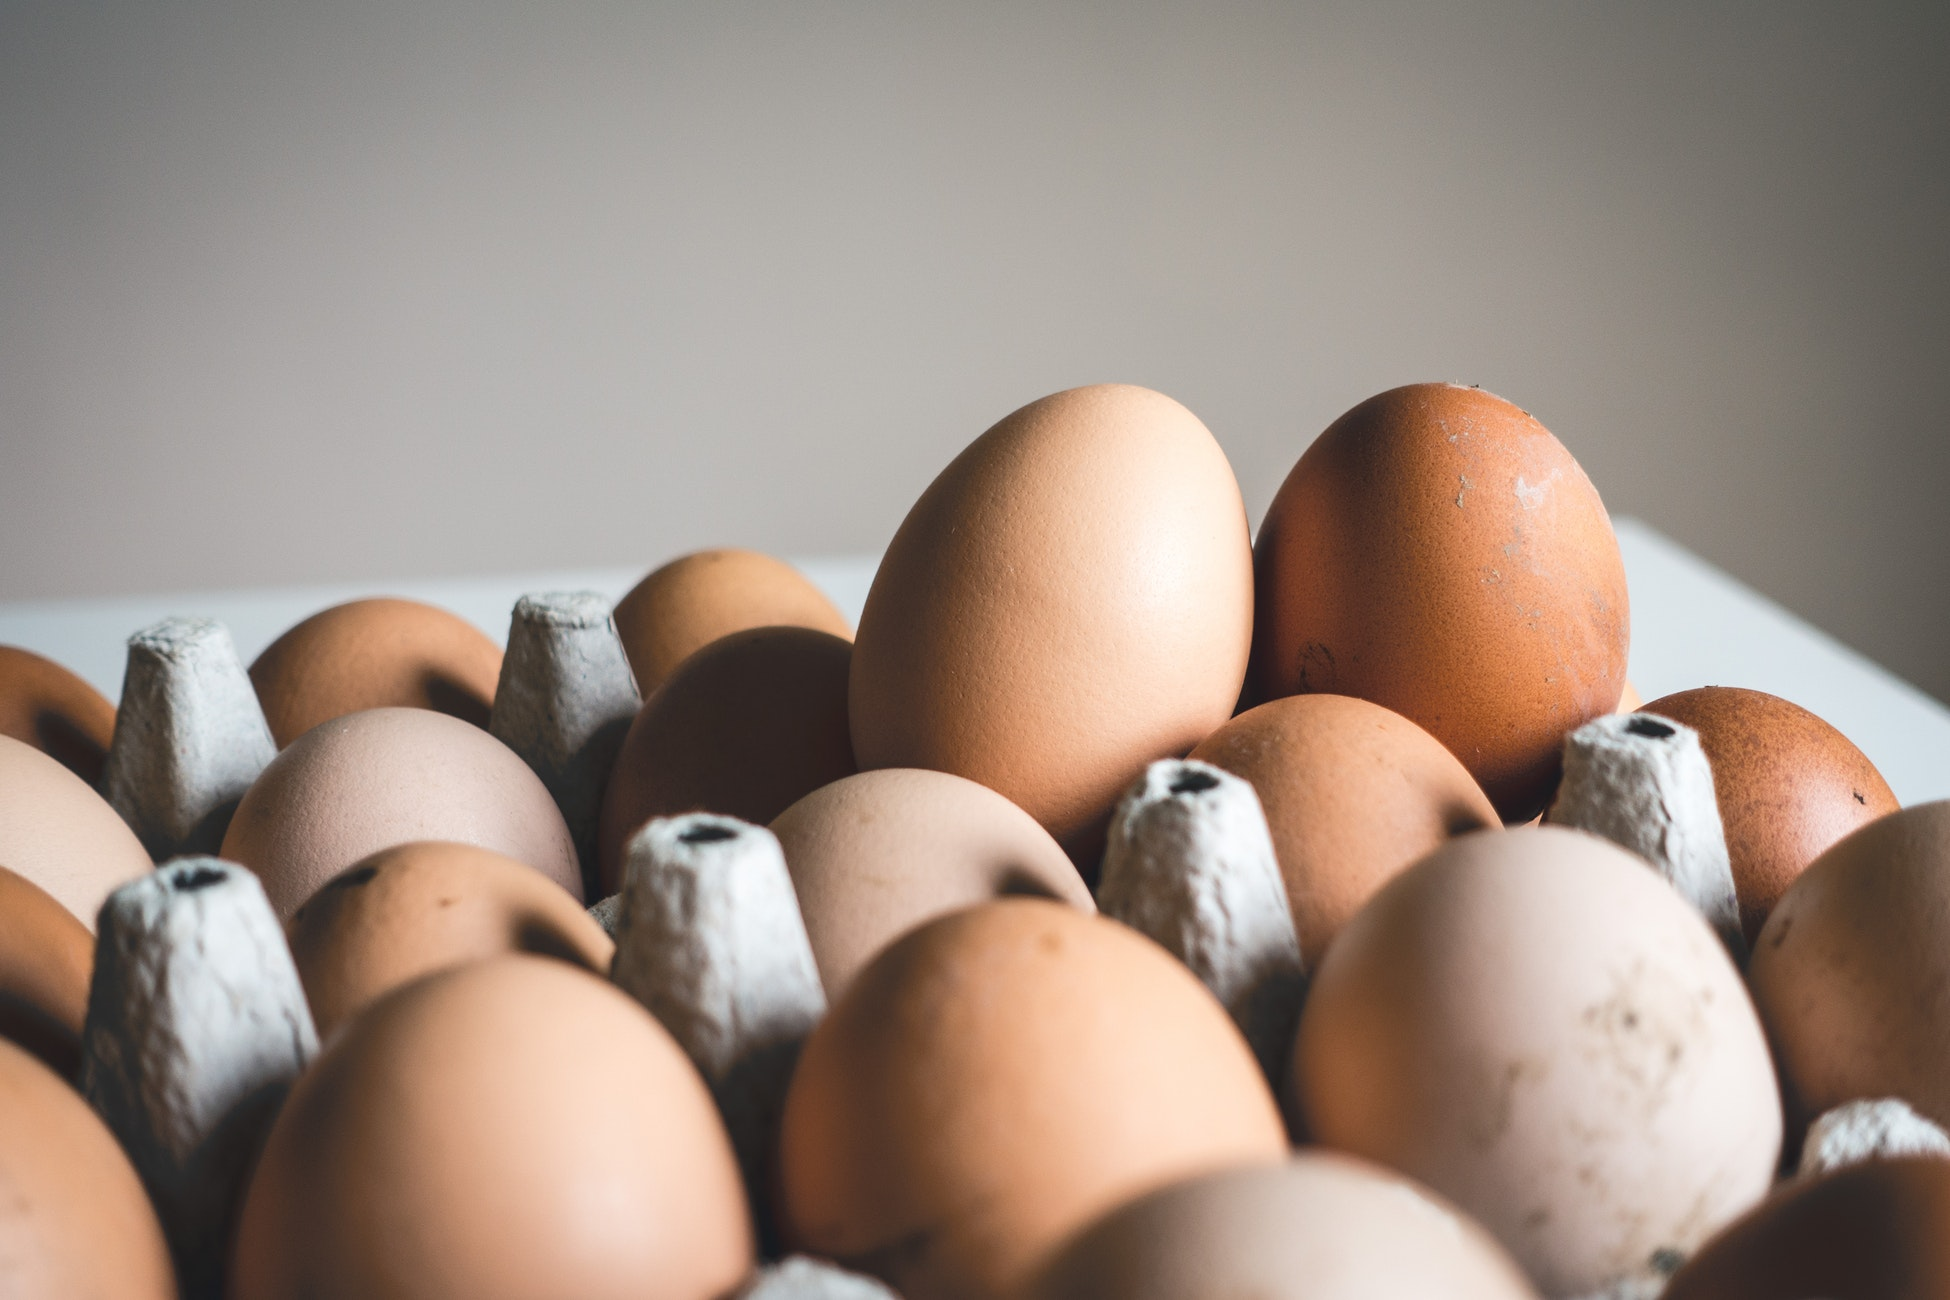 ENTITY shares 7 DIY masks and includes dermatologist commentary on ingredients such as egg whites. PHOTO OF EGGS VIA UNSPLASH/@FOODIESFEED